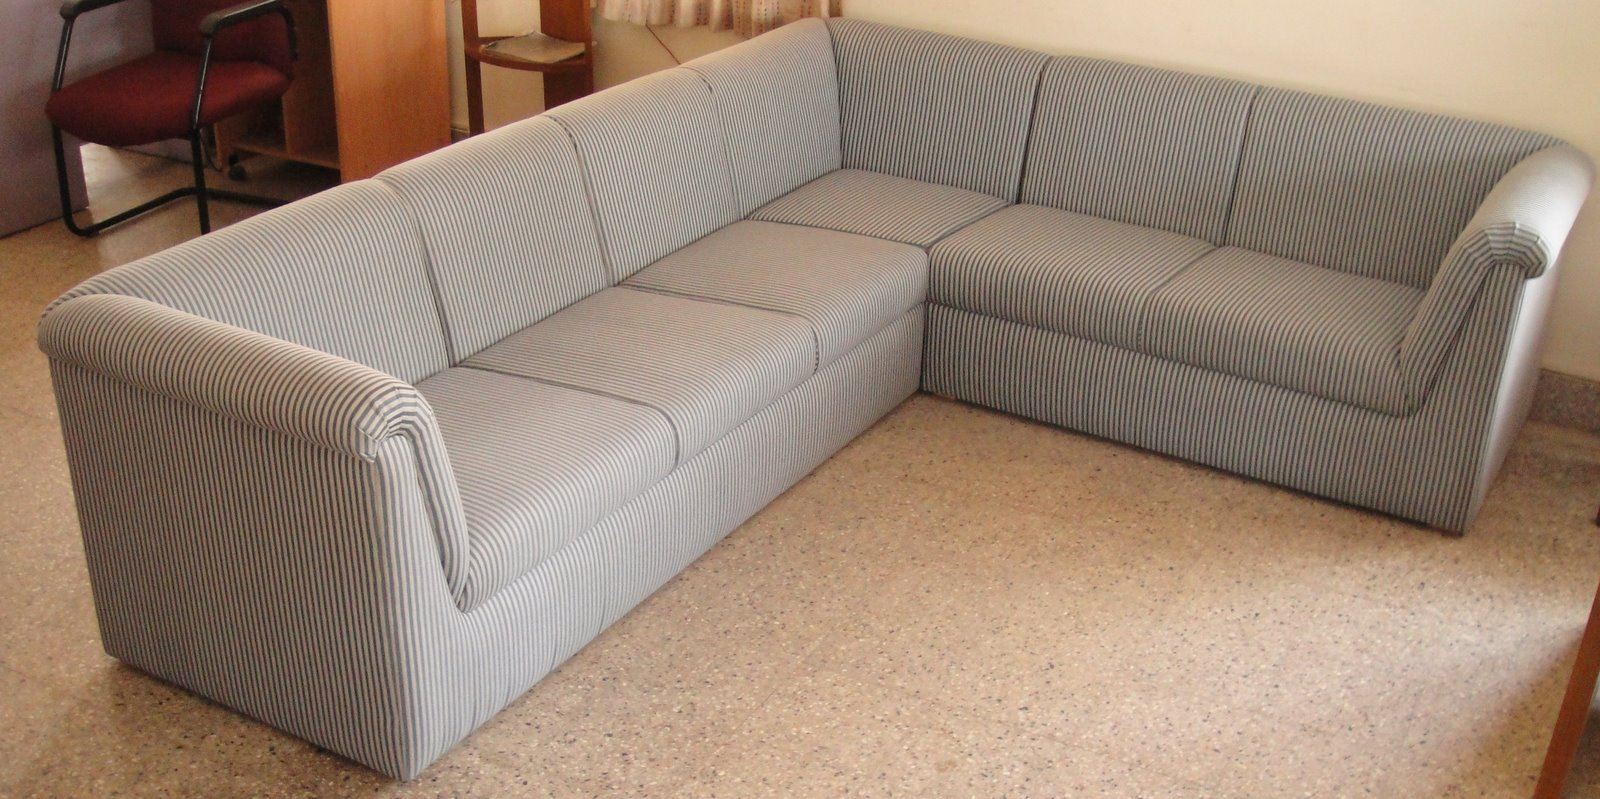 good leather sofas in bangalore unusual sofa designs buztic set deals design